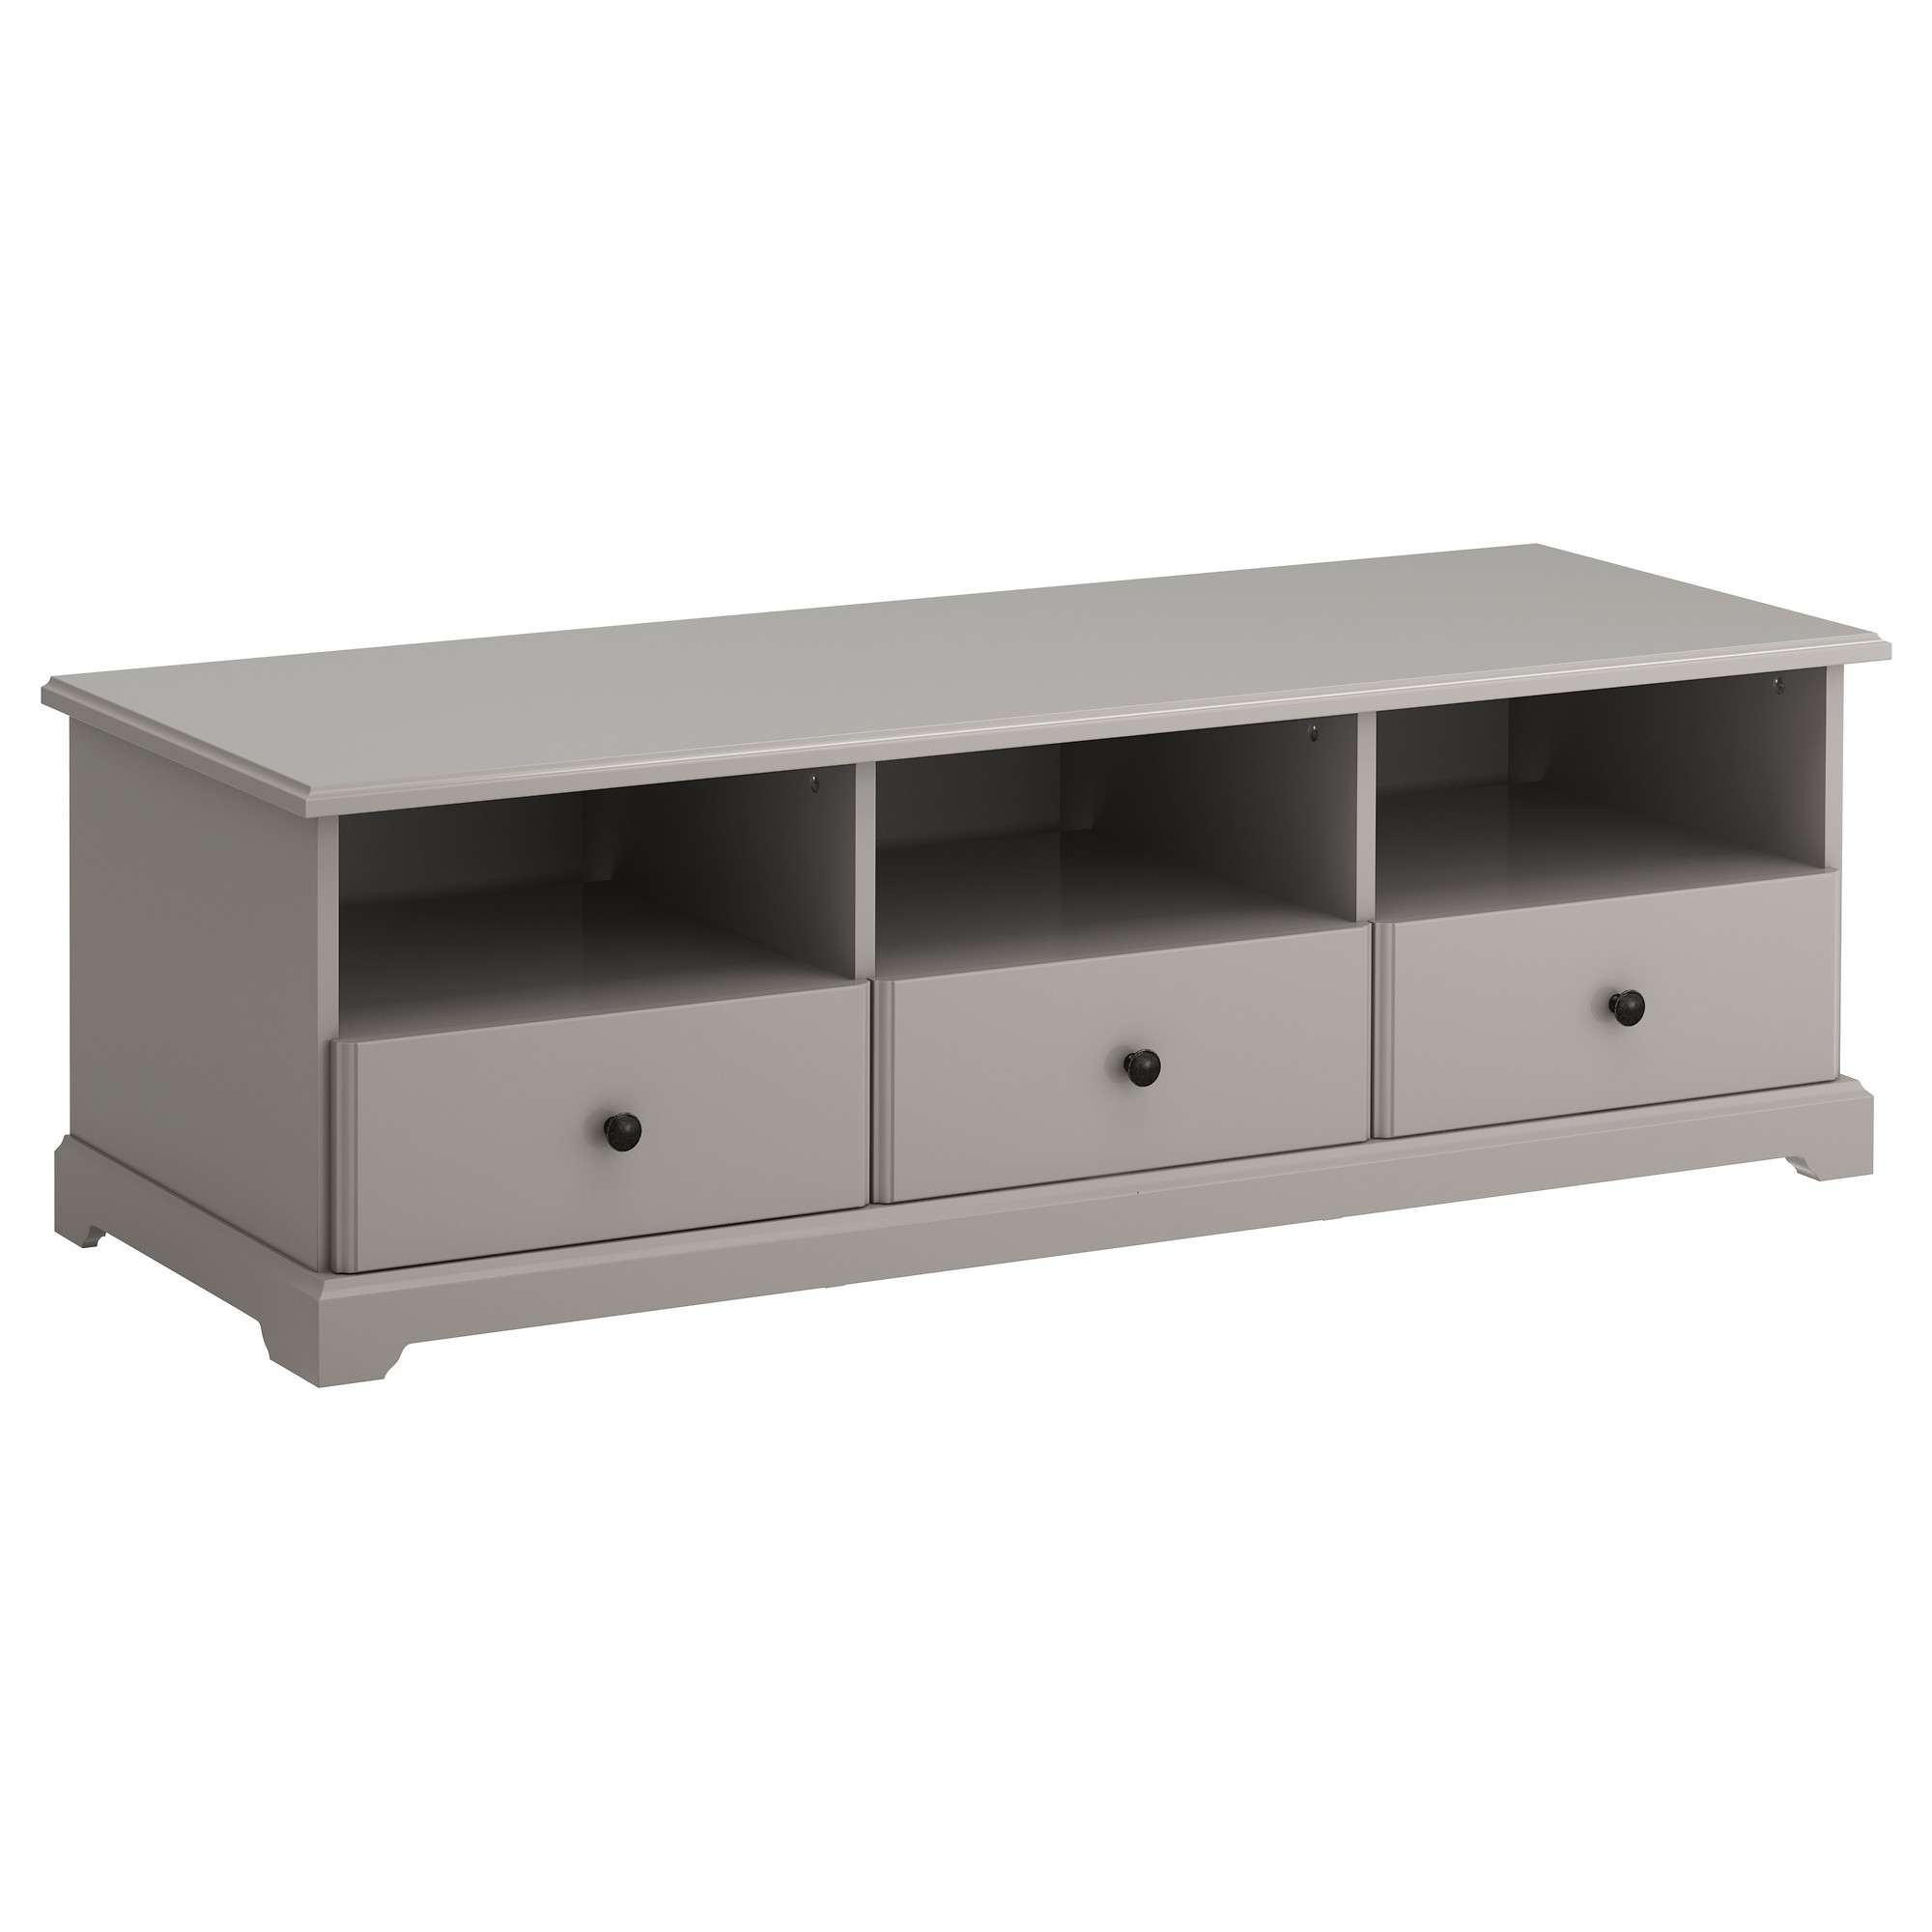 Liatorp Tv Bench Grey 145x49x45 Cm – Ikea Inside Tv Stands At Ikea (View 3 of 15)